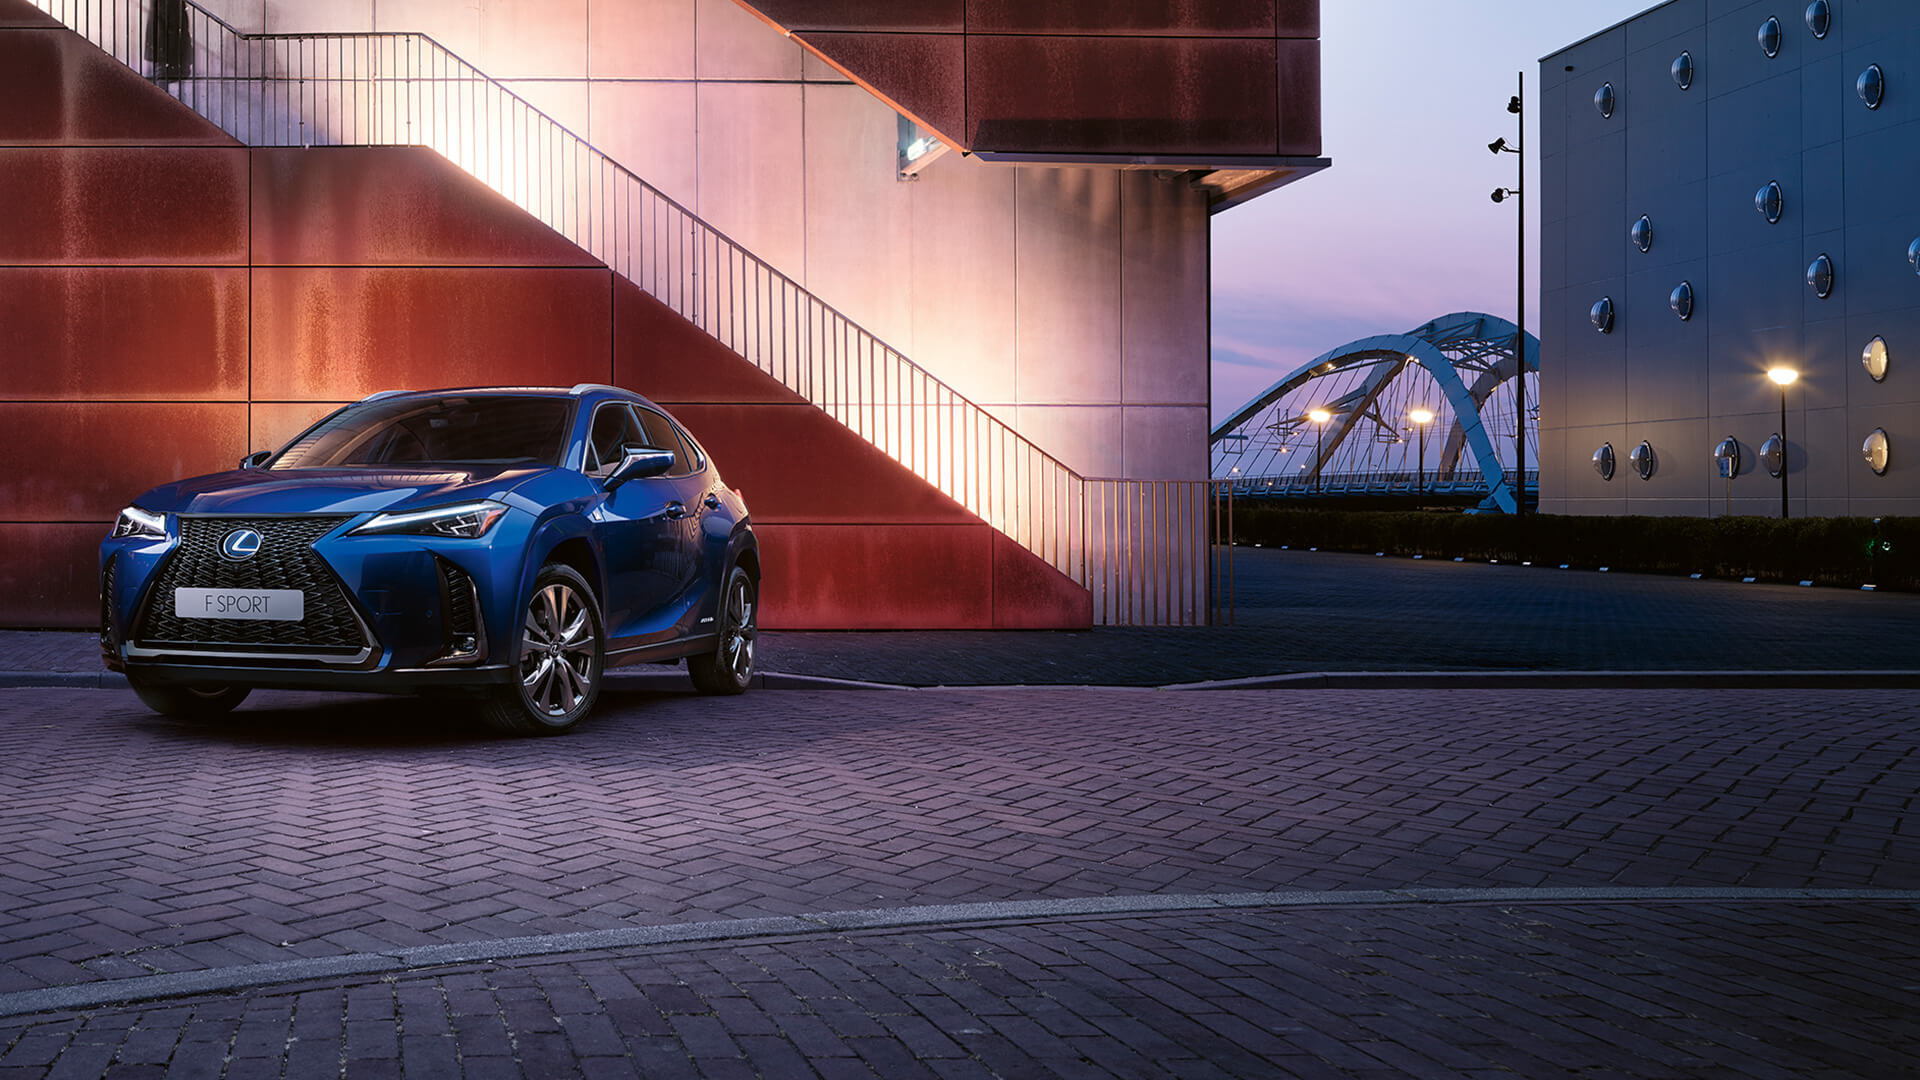 2022 lexus ux key features amazing to own